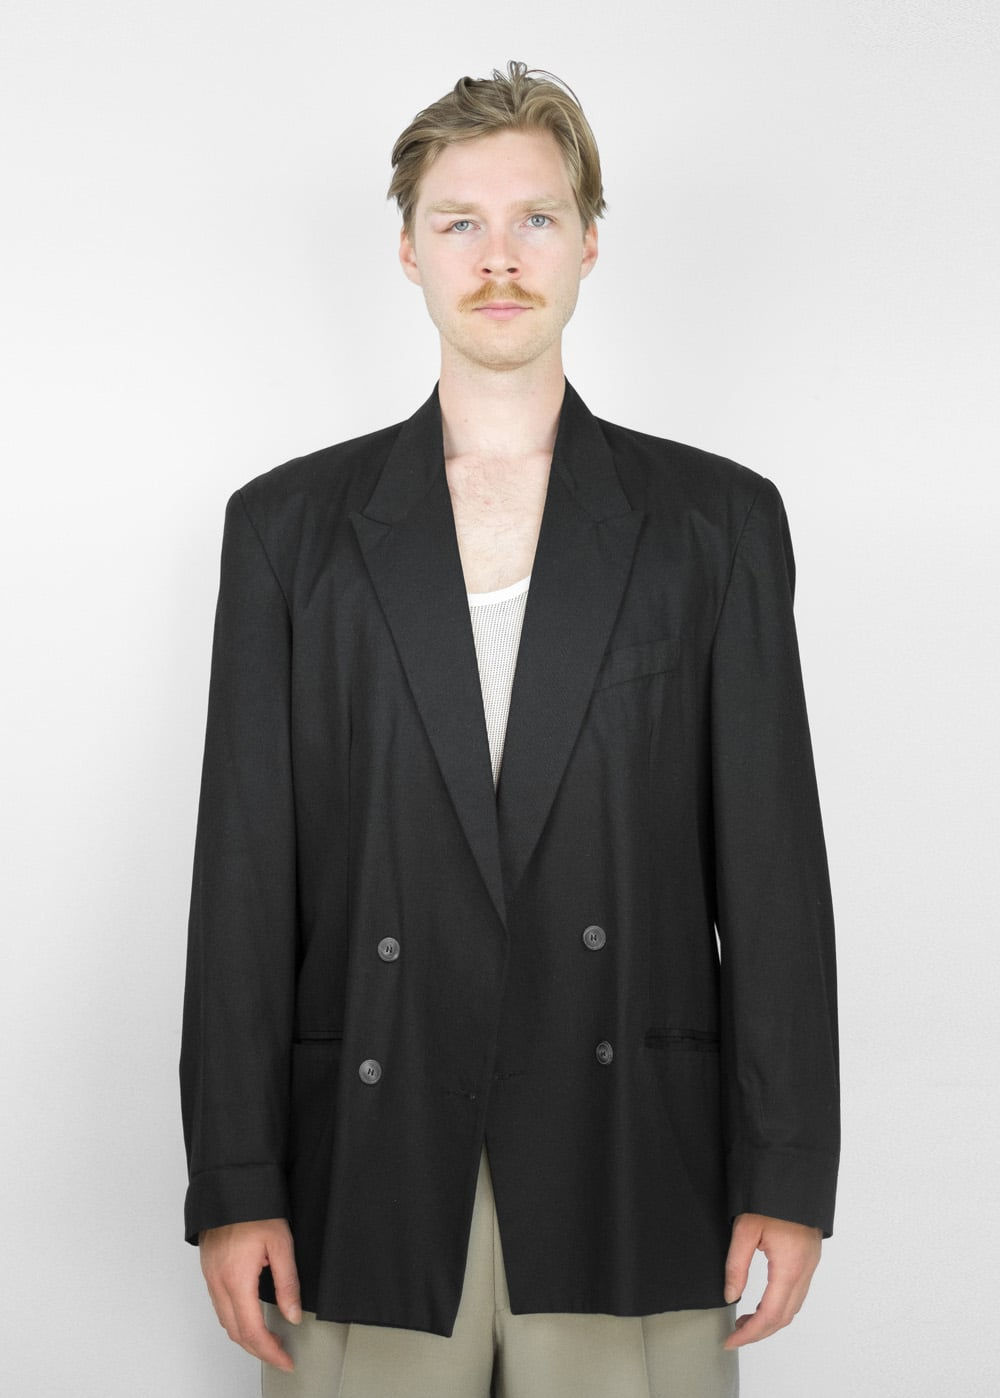 90s Black Suit Jacket 120